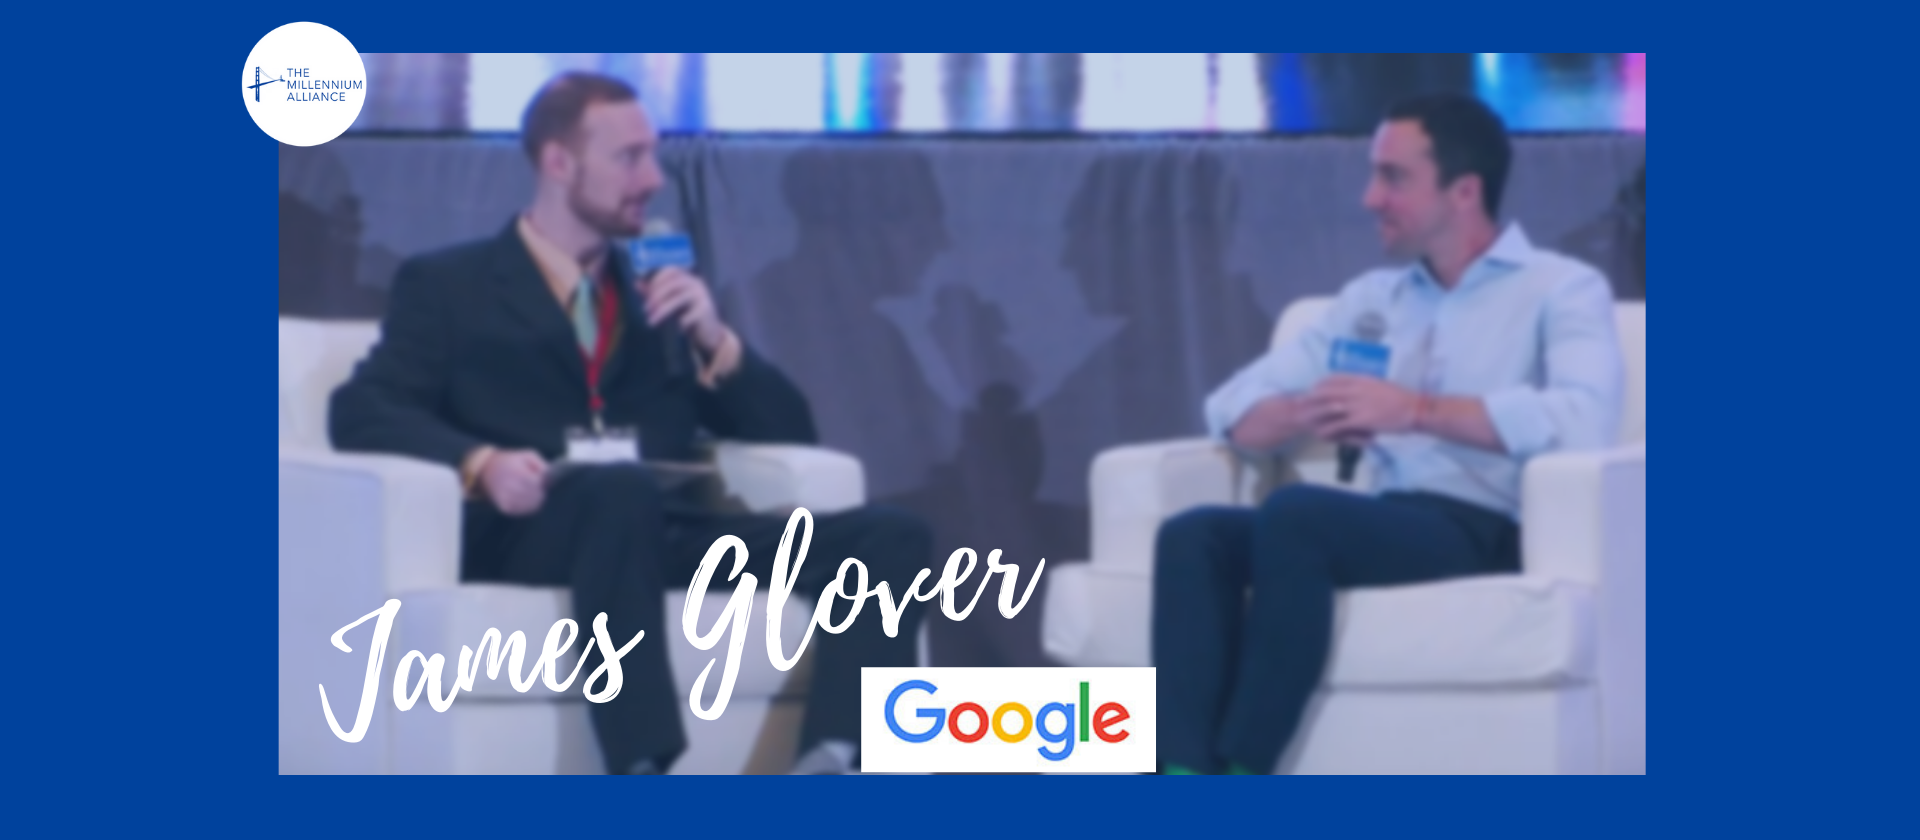 Interview with Google's Senior Partner, James Glover